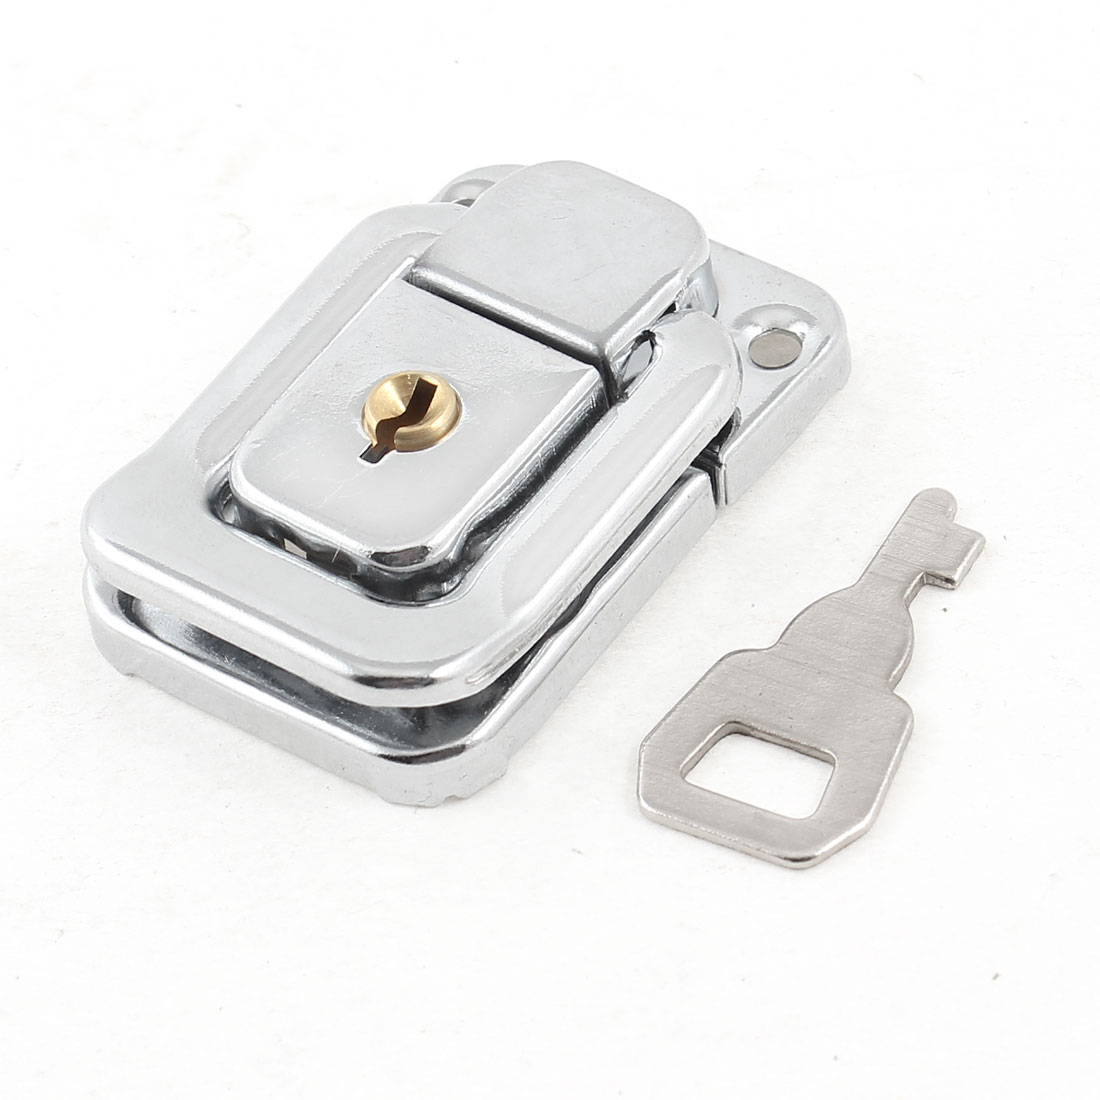 Unique Bargains Replacement Sliver Tone Hasp Latch Lock w Key for Jewelry Box Cabinets